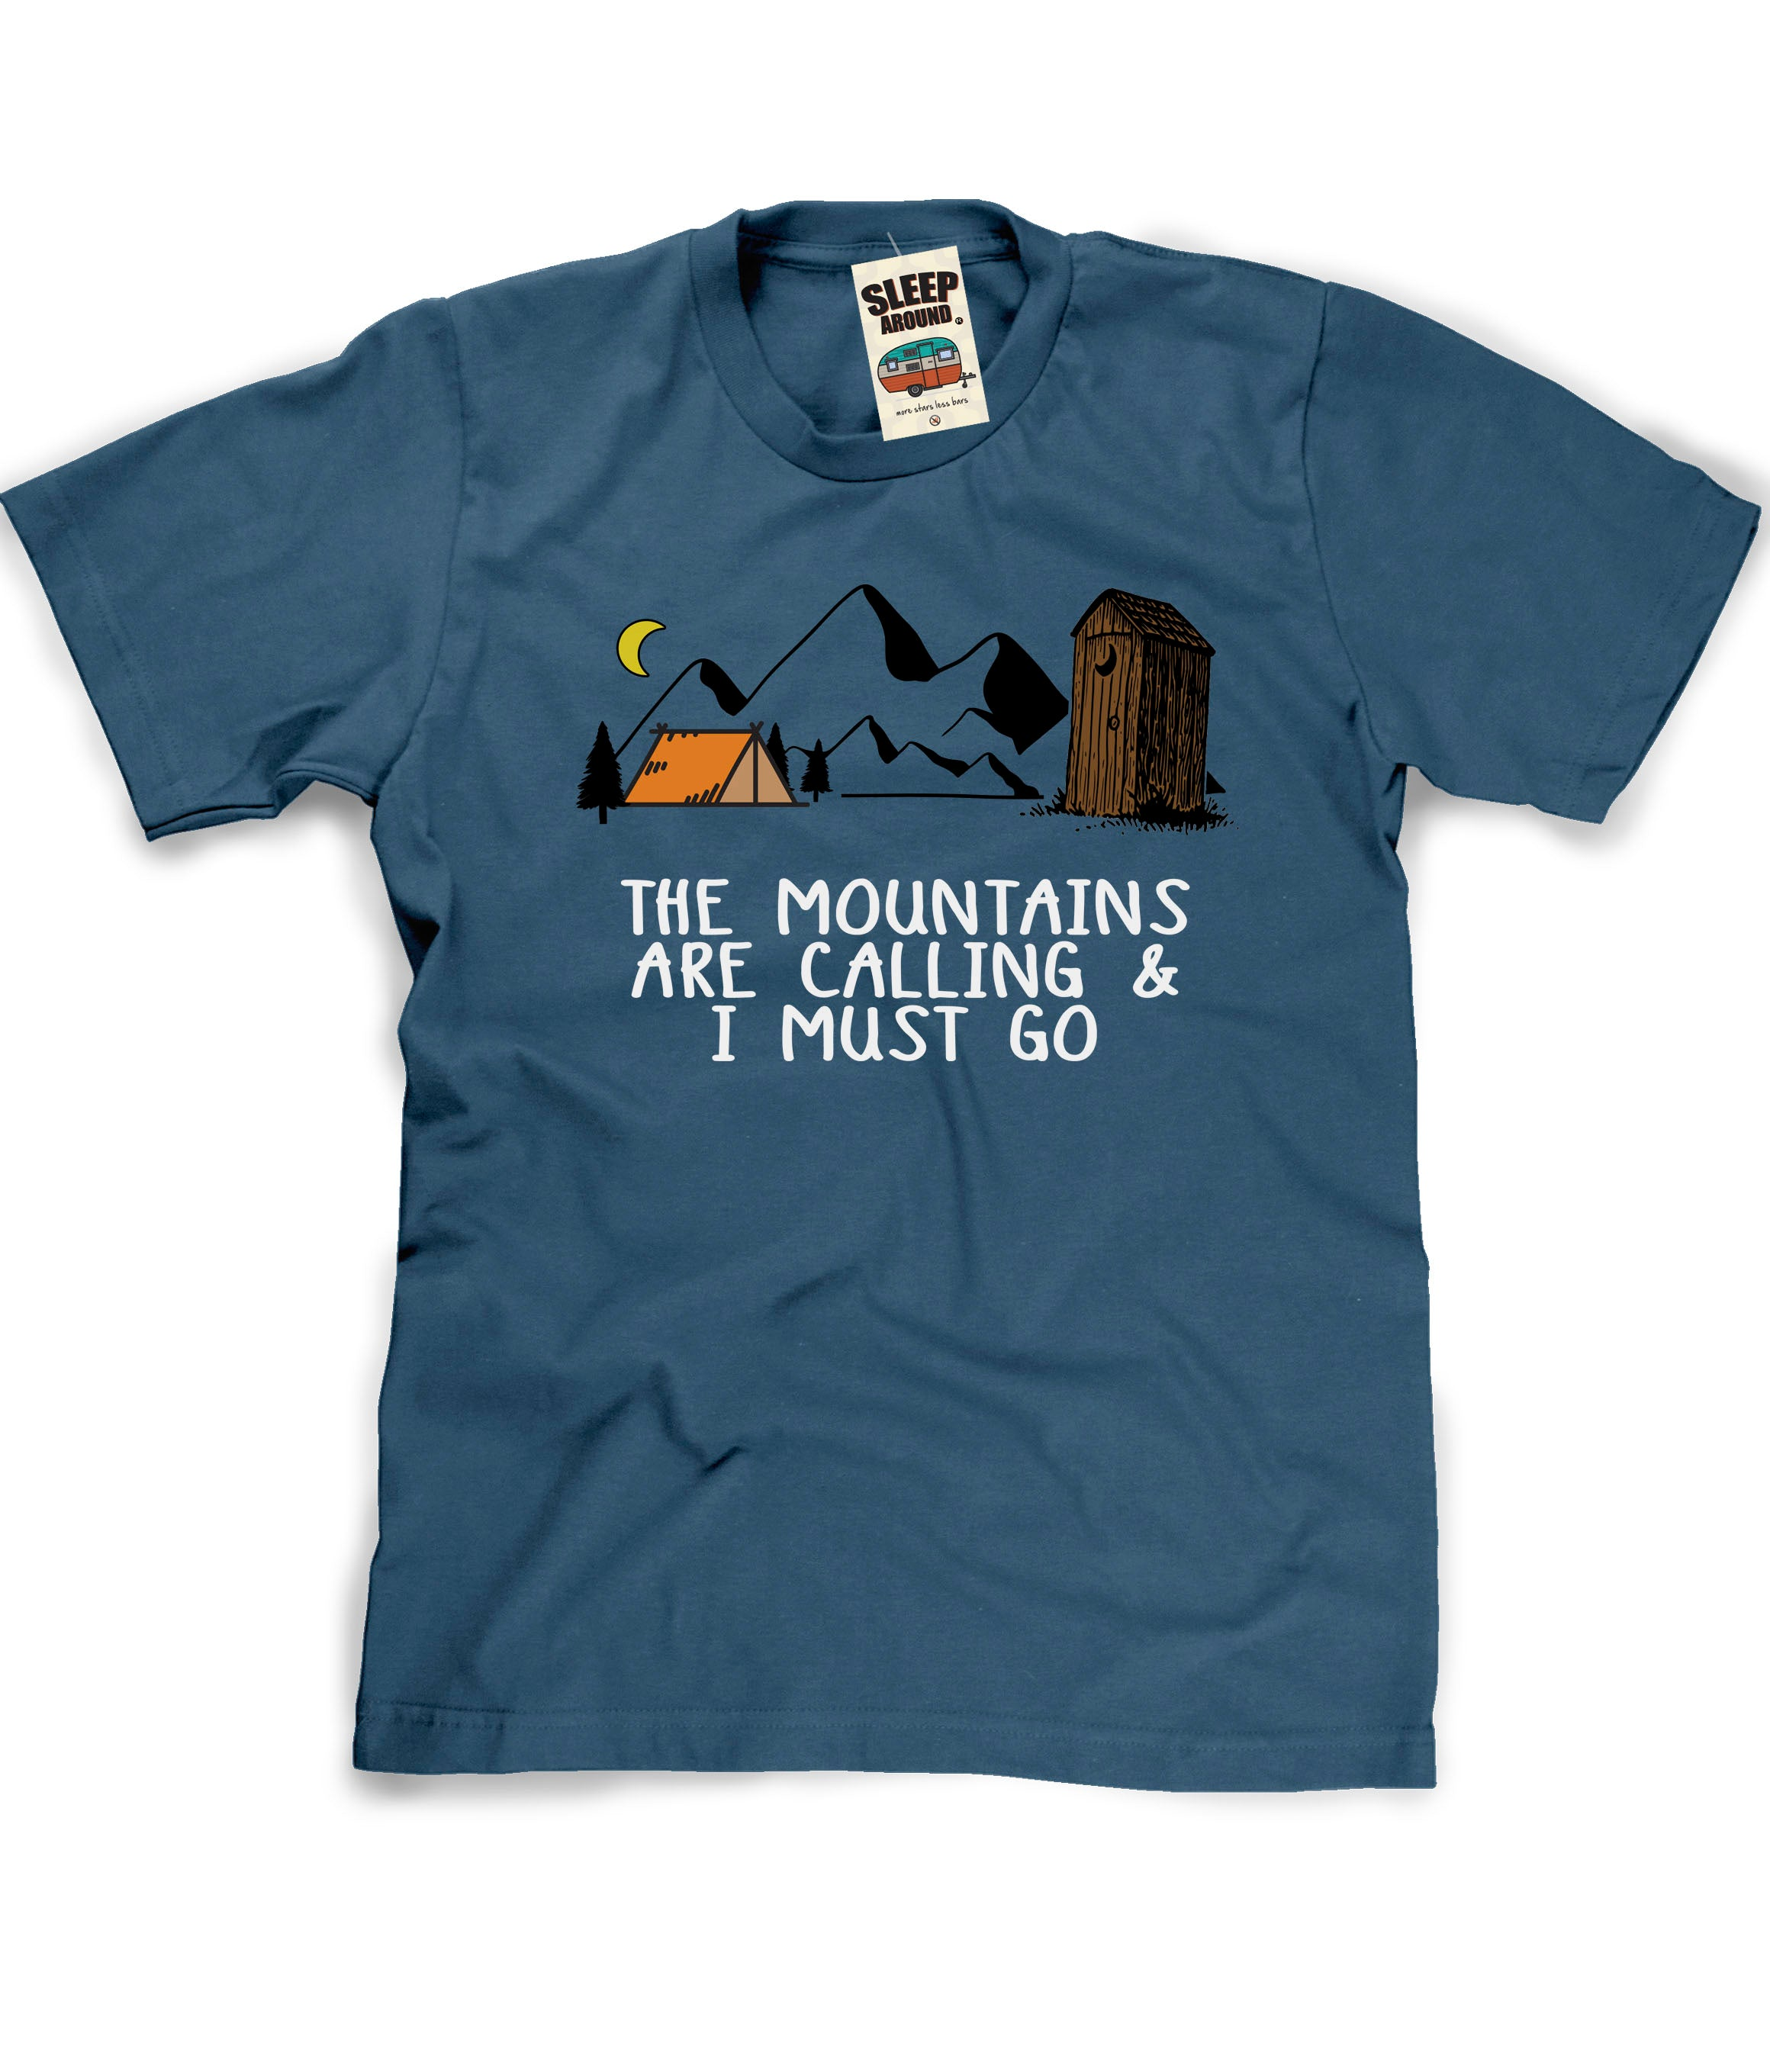 Unisex Shirt for Campers